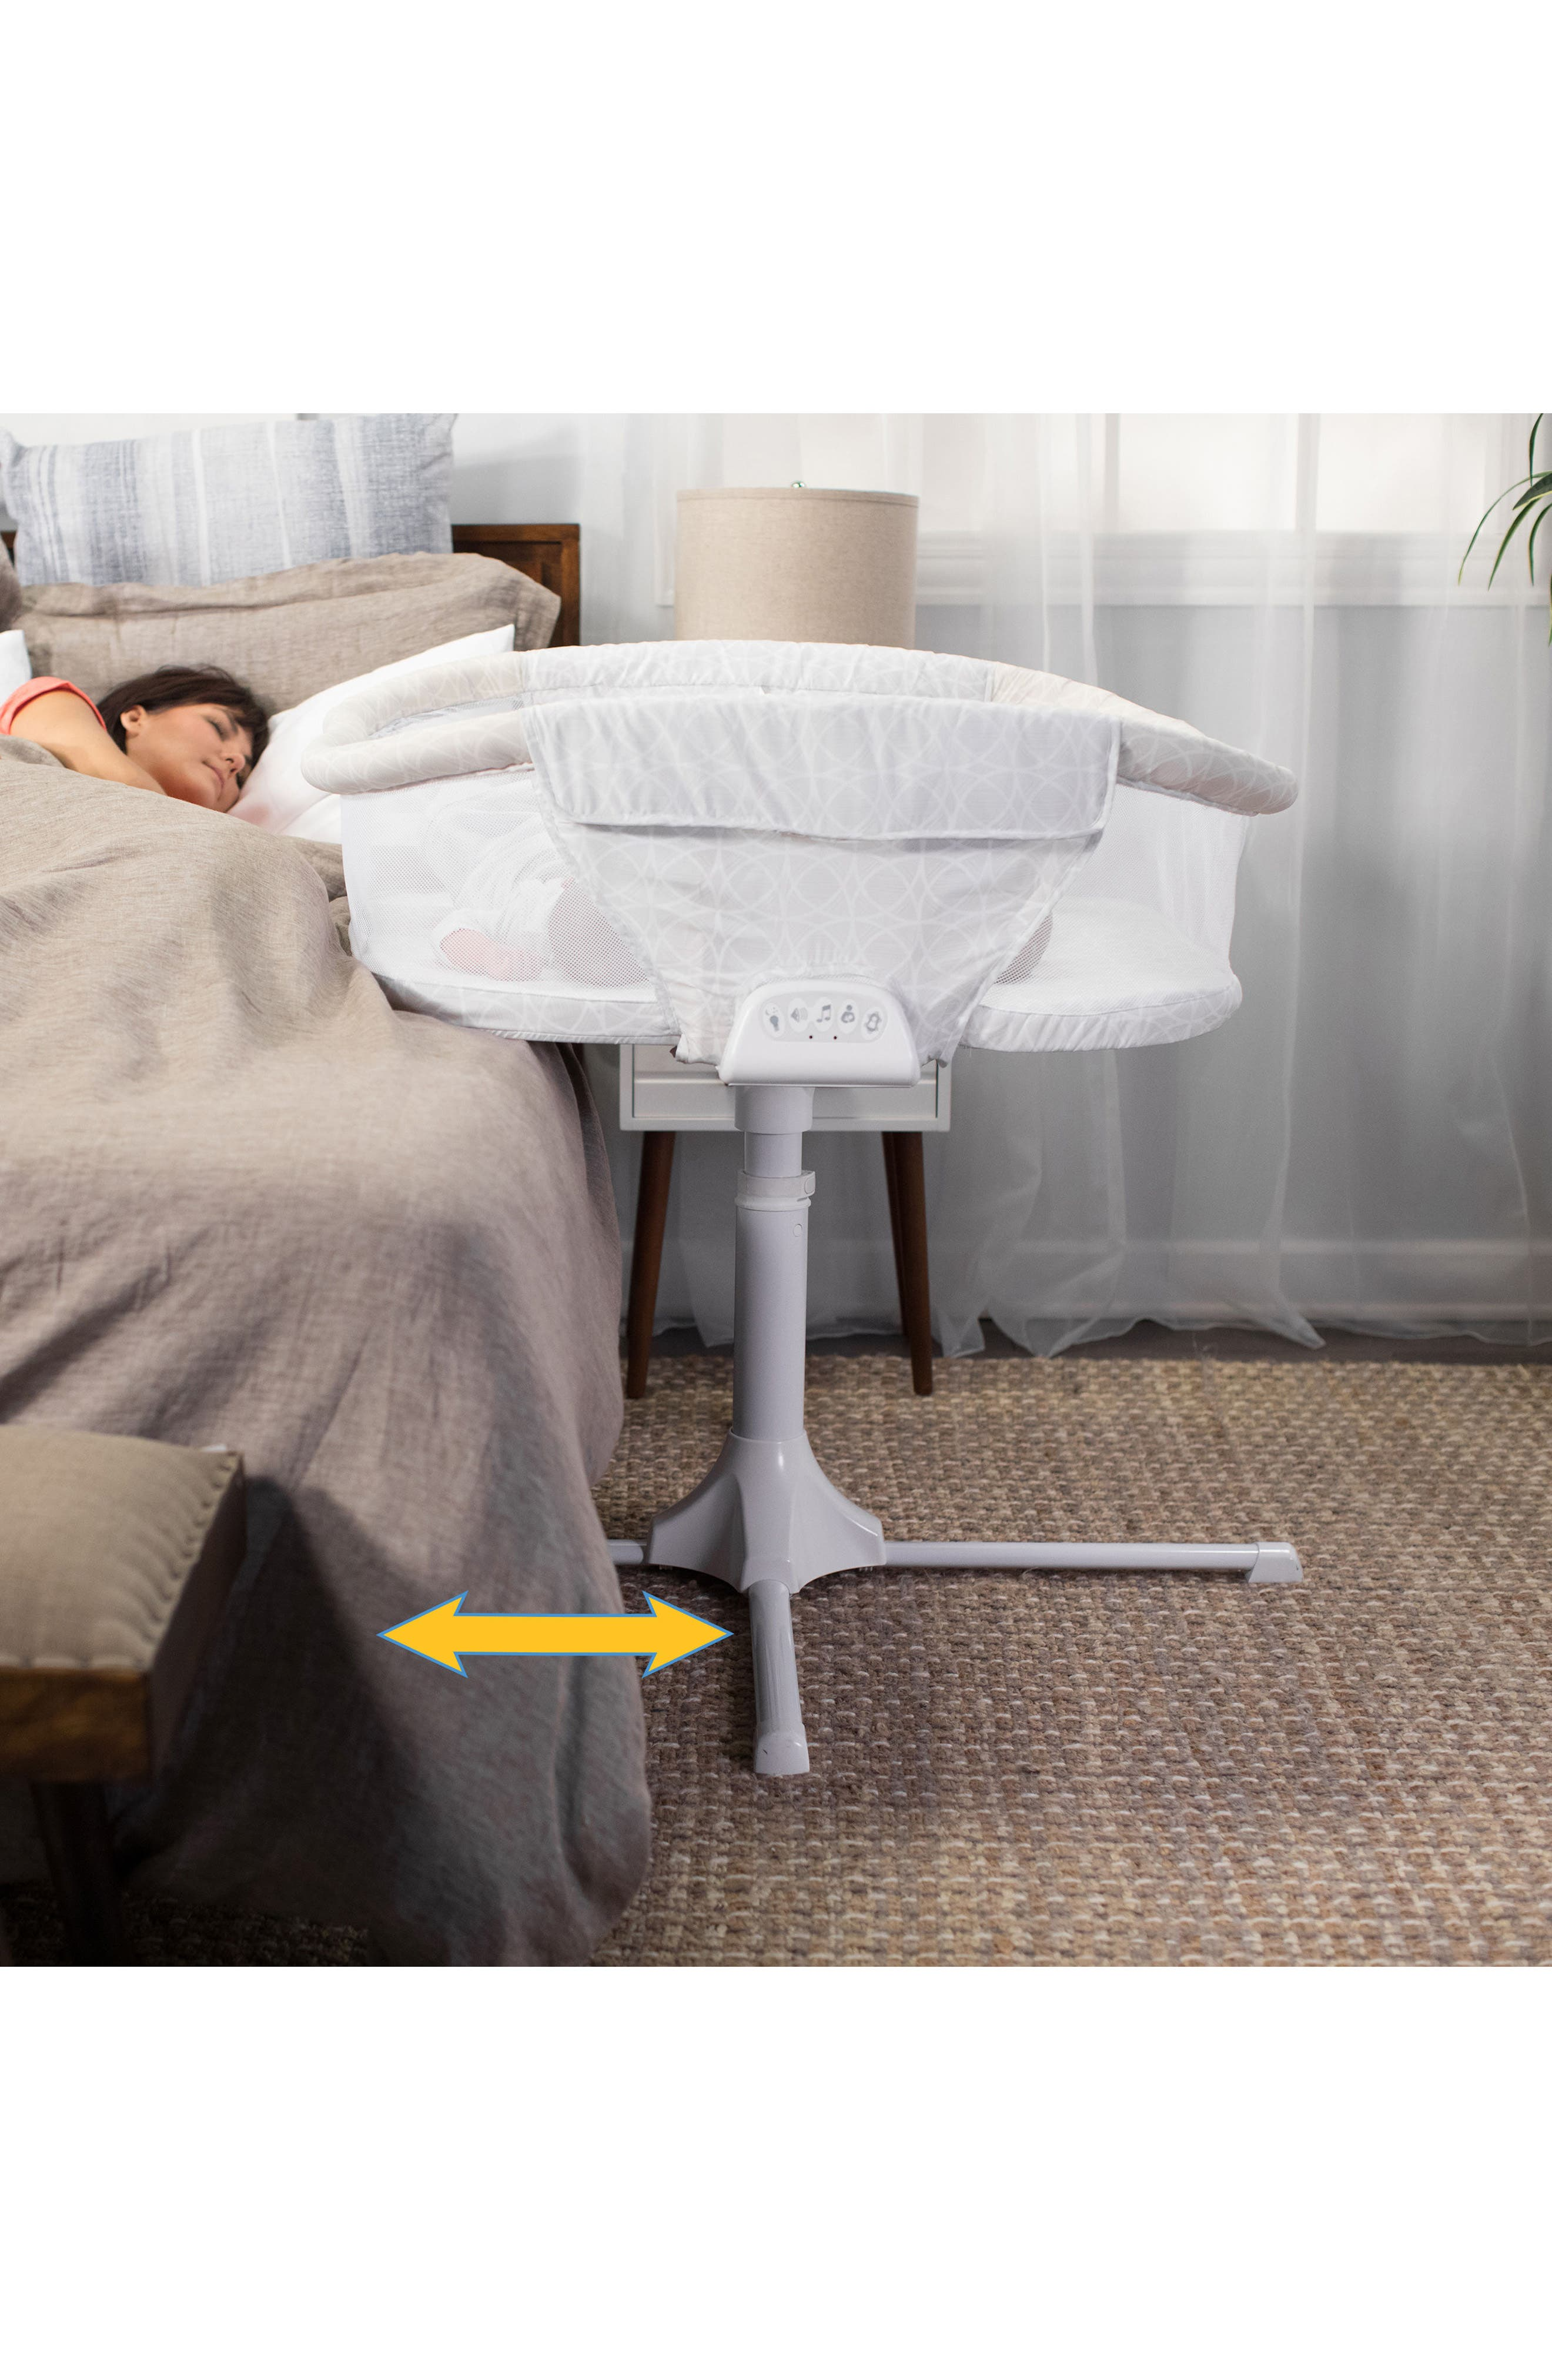 Bassinest Premiere Series Twin Bedside Swivel Sleeper,                             Alternate thumbnail 3, color,                             Sand Circles